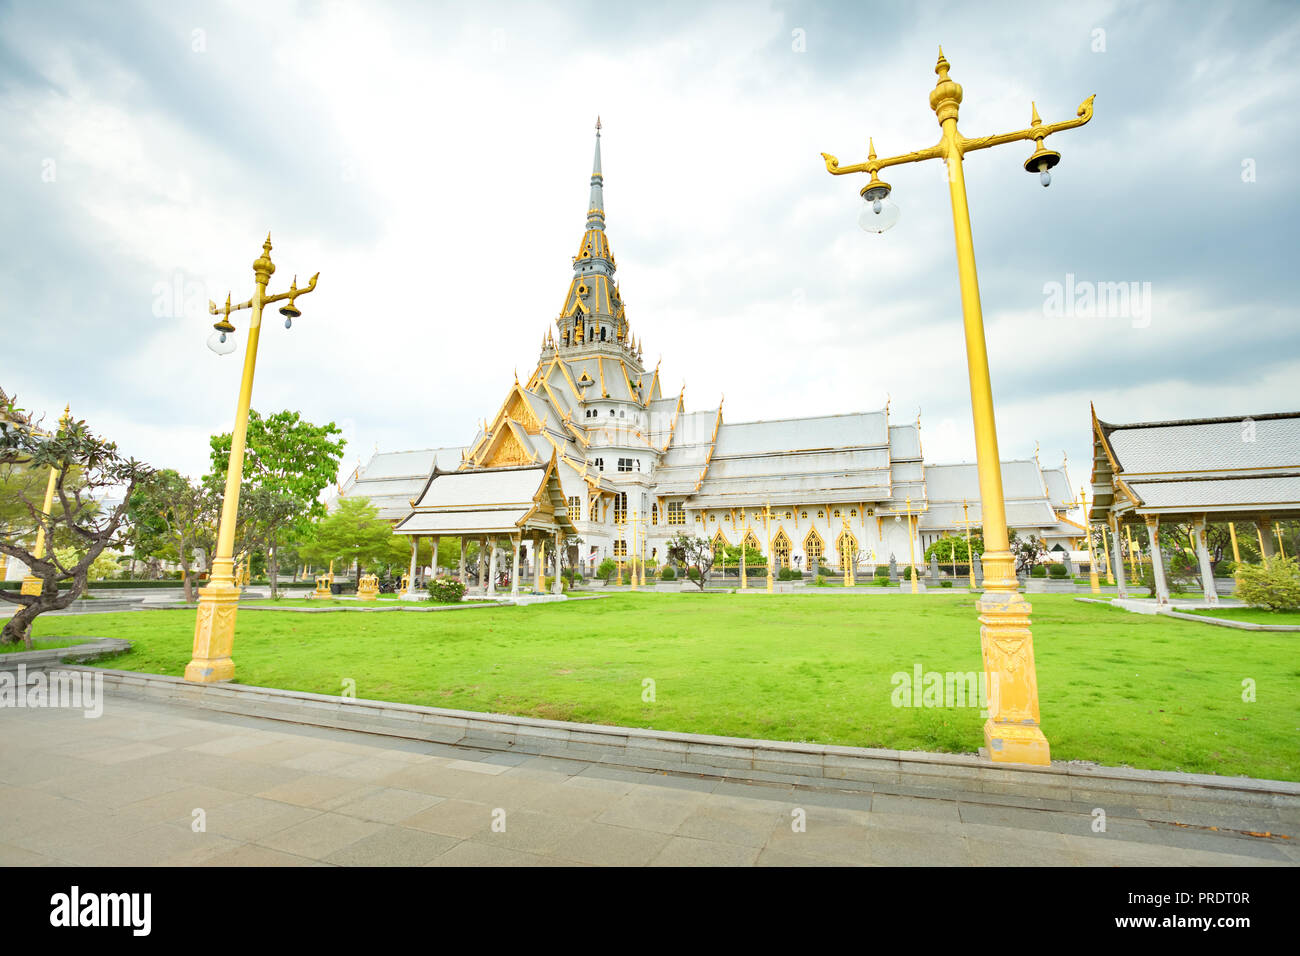 Gorgeous temple Wat Sothonwararam in Chachoengsao Province, Thailand. - Stock Image